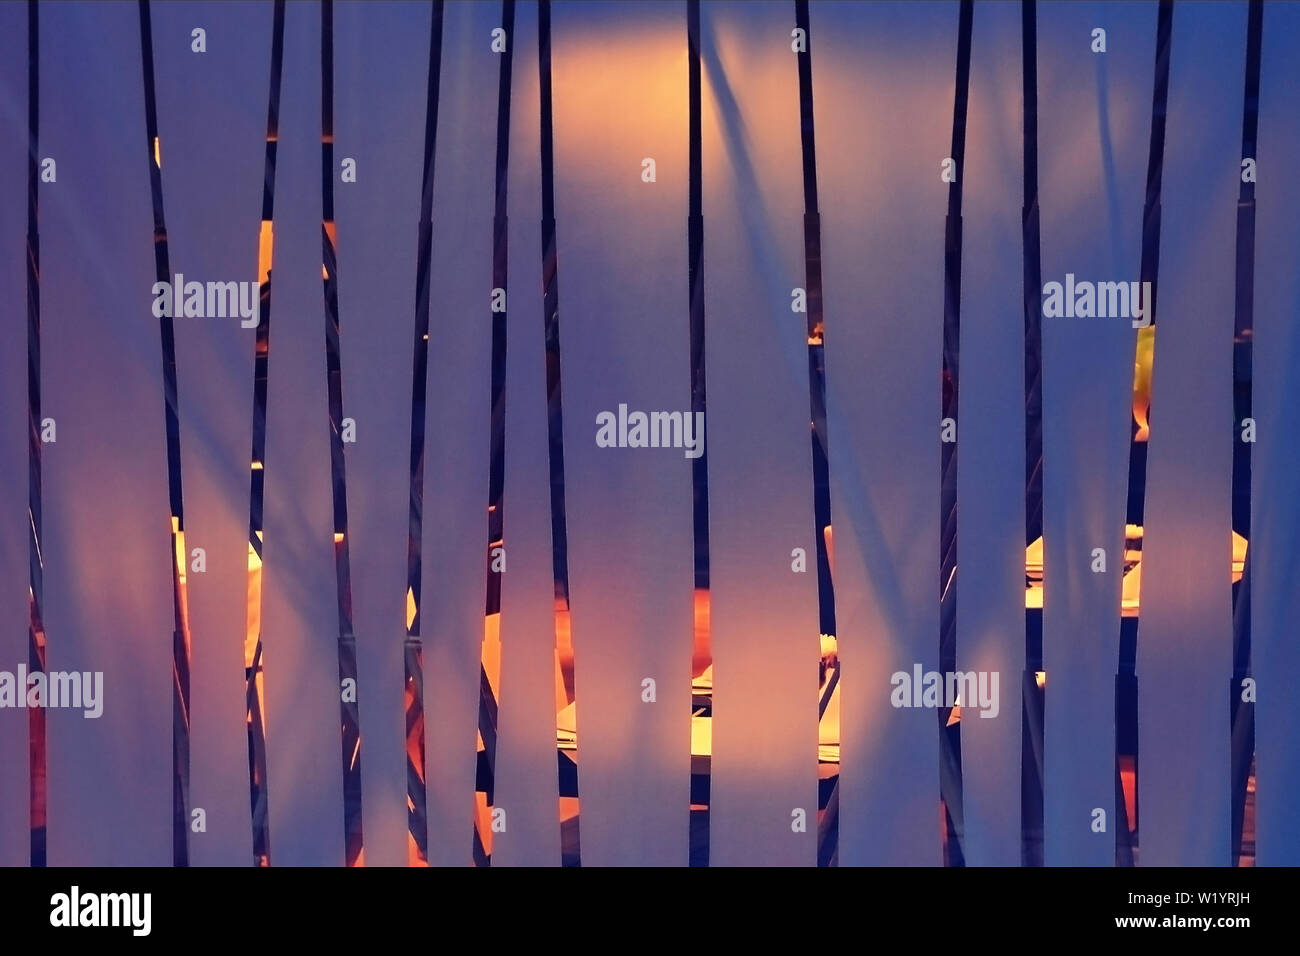 Frosted glass with vertical transparent strips, behind which there is a lighted hall, abstract interior background of yellow and purple colors. Stock Photo